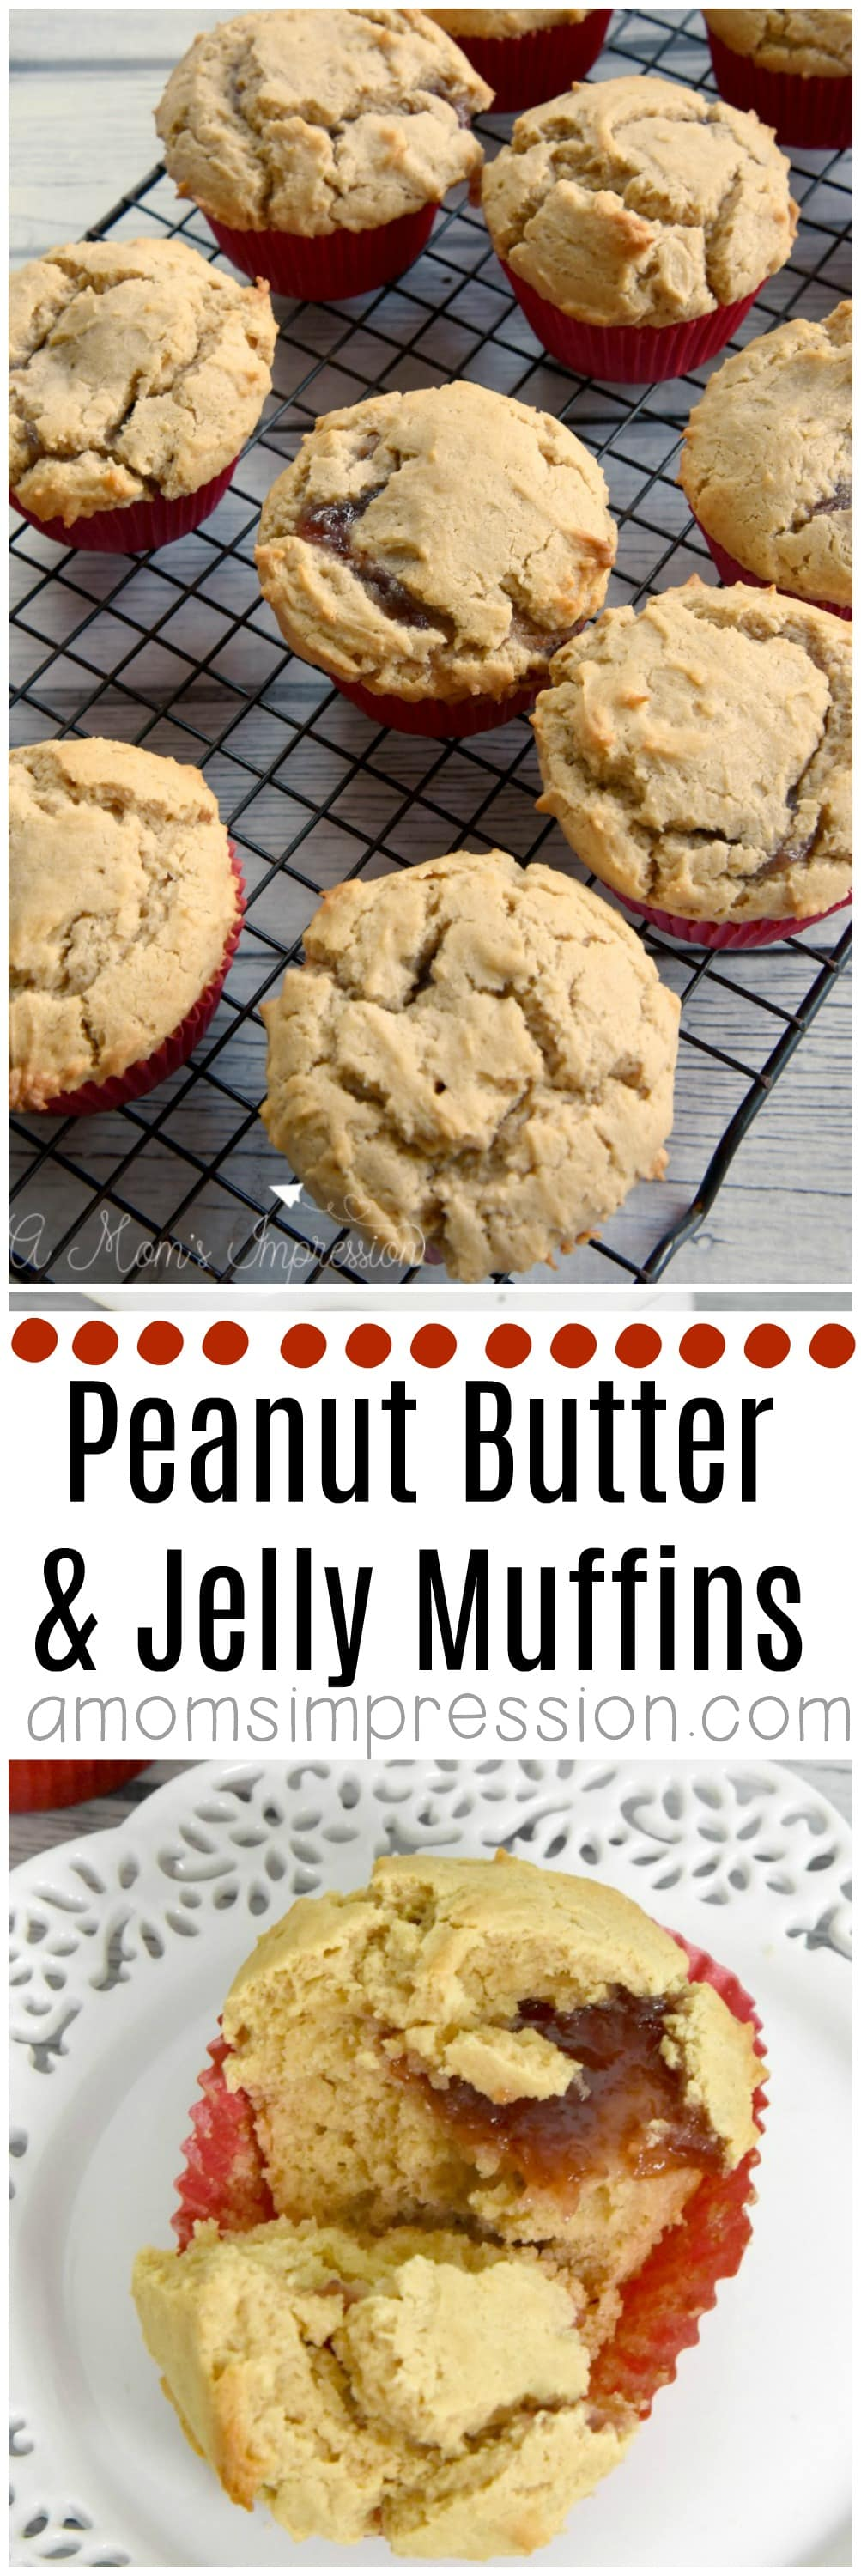 You are going to love these easy peanut butter and jelly muffins. Kids love them for breakfast, in their lunchbox, or even for an after school snack. I may have even had this recipe for dessert! They are very moist and more healthy than any store bought version.